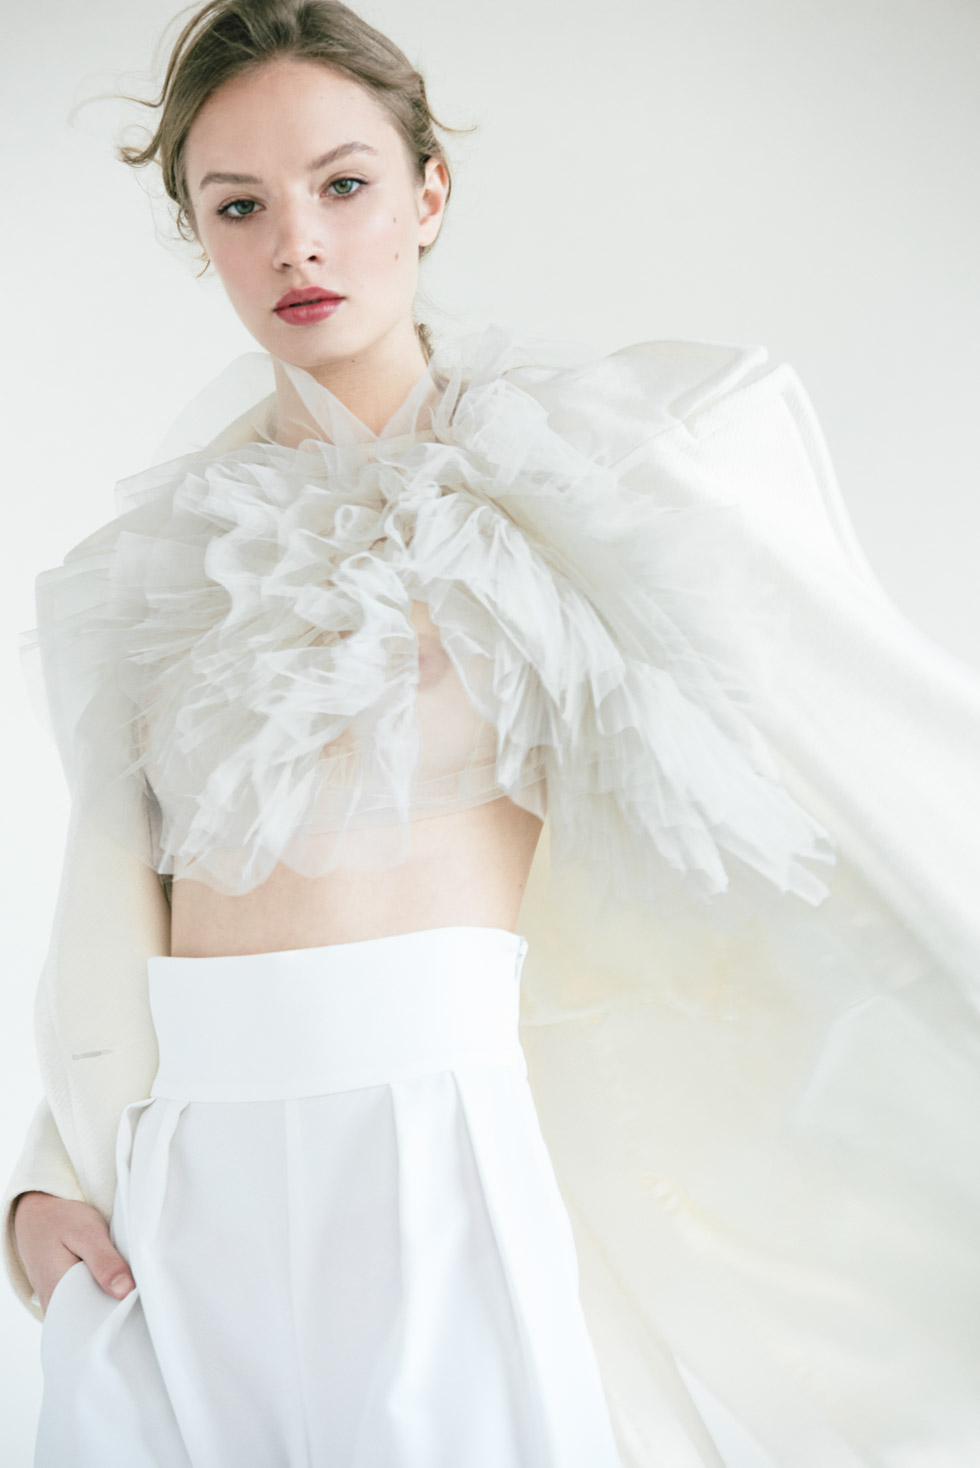 Co-production between three bridal brands to welcome the possibility of getting married again after the pandemic. Joining resources they could maximize their reach while working with one of the best fashion photographers in Spain.